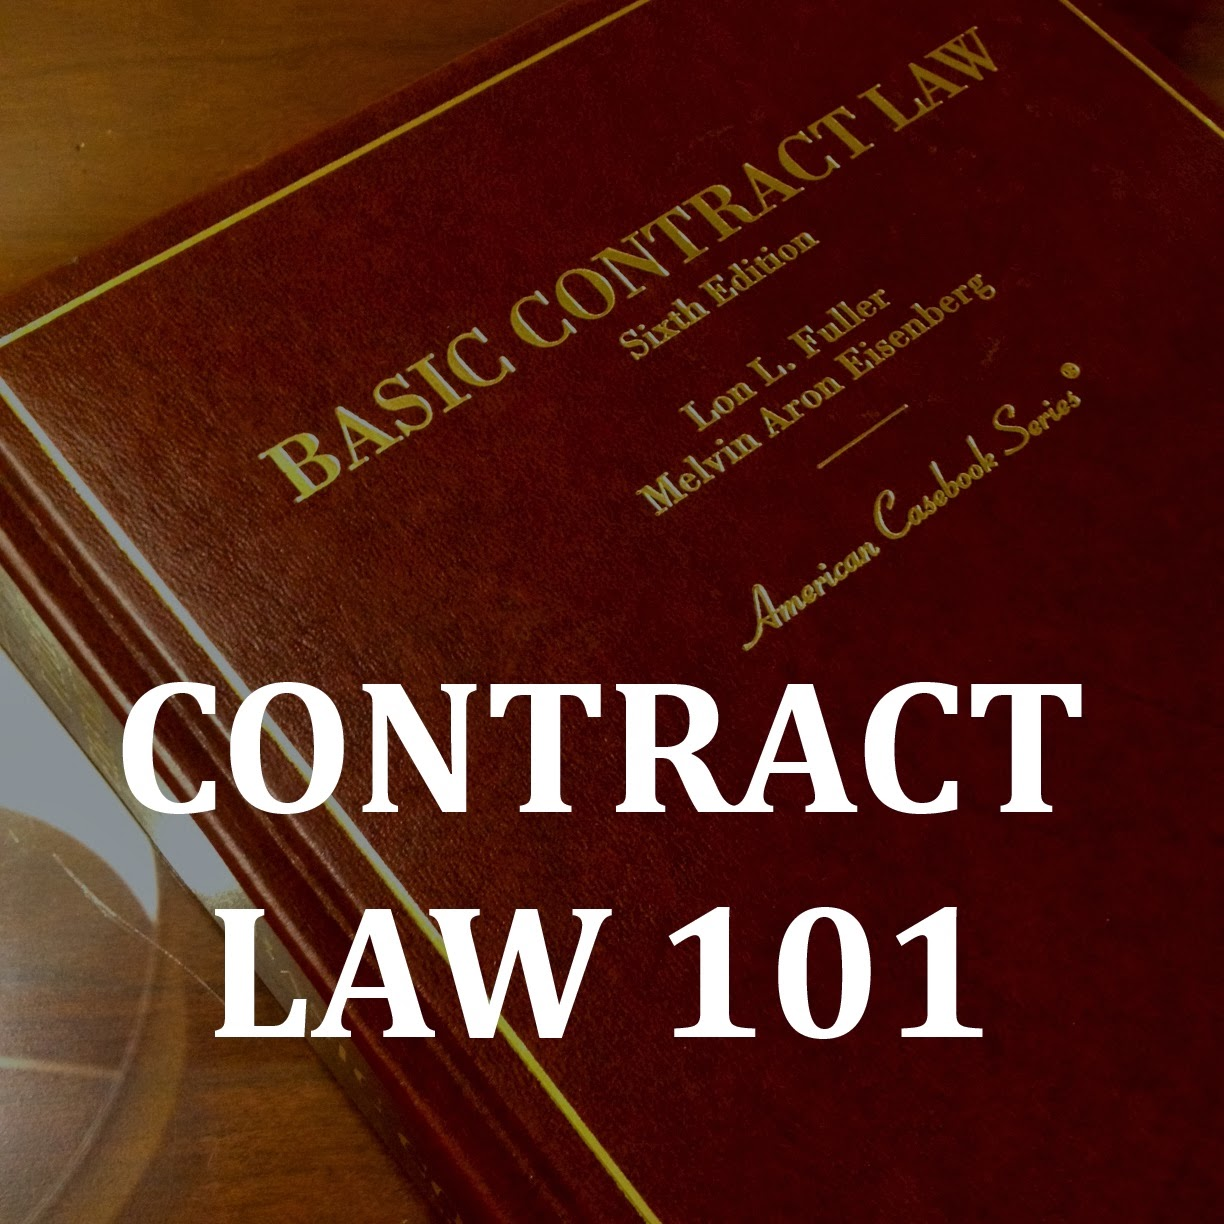 contract law introduction essay An introduction to contract law contract law is that branch of the law which determines the circumstances in which a promise shall be legally binding on the person making it it consists of an actionable promise or promises ie either party may sue on its terms.